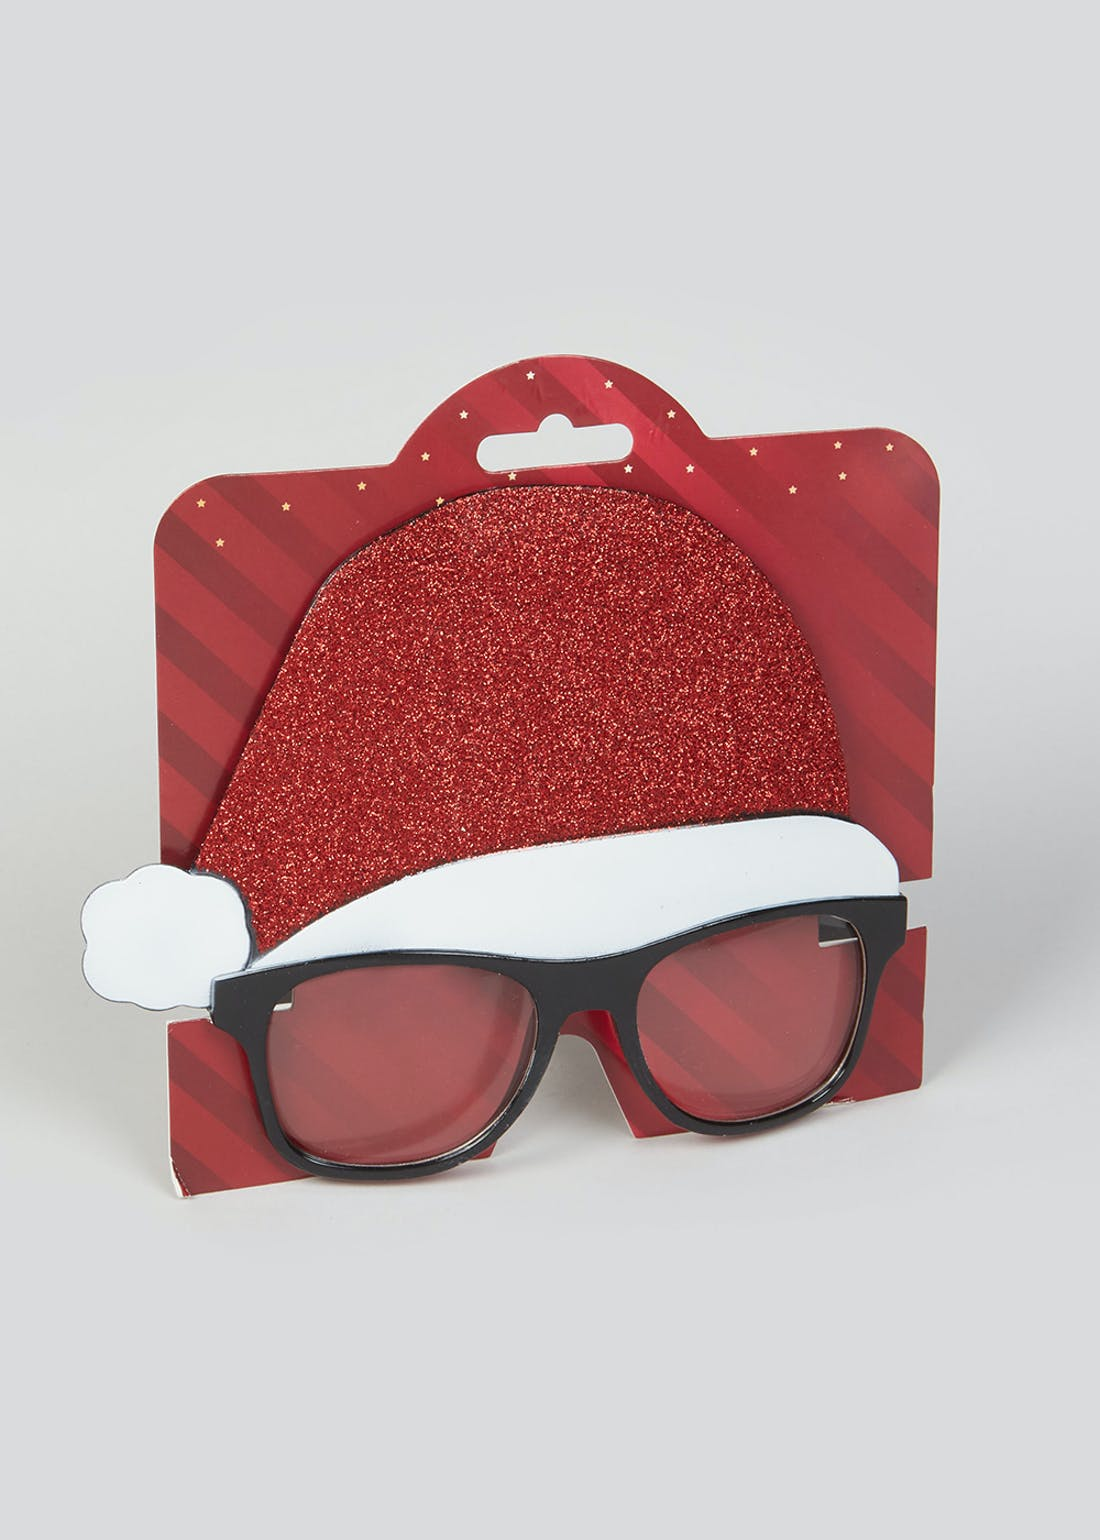 Novelty Christmas Santa Glasses